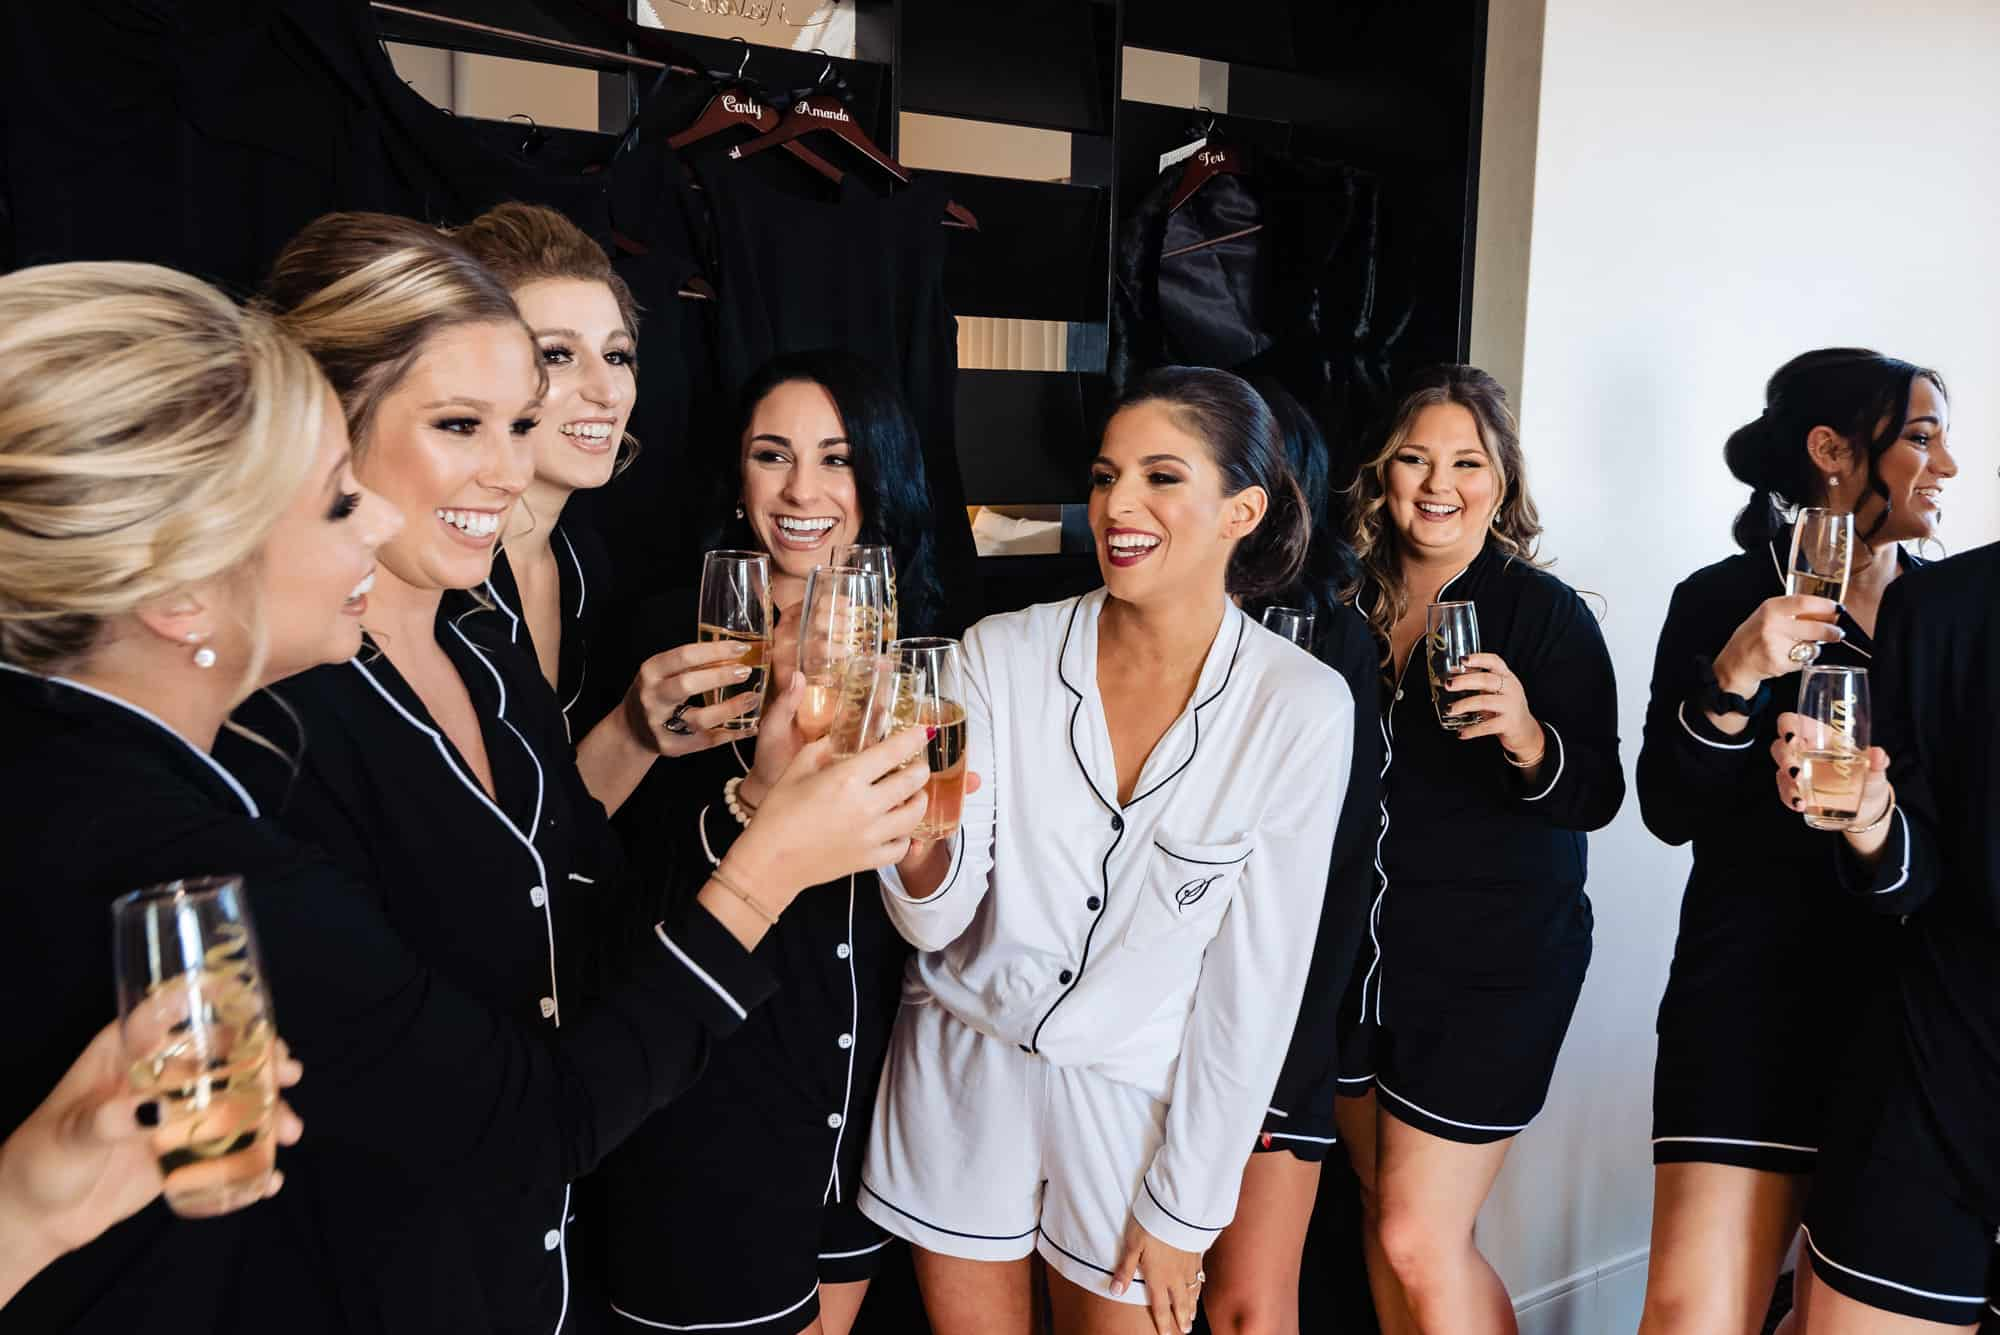 Bride toasts bridesmaids with champagne.